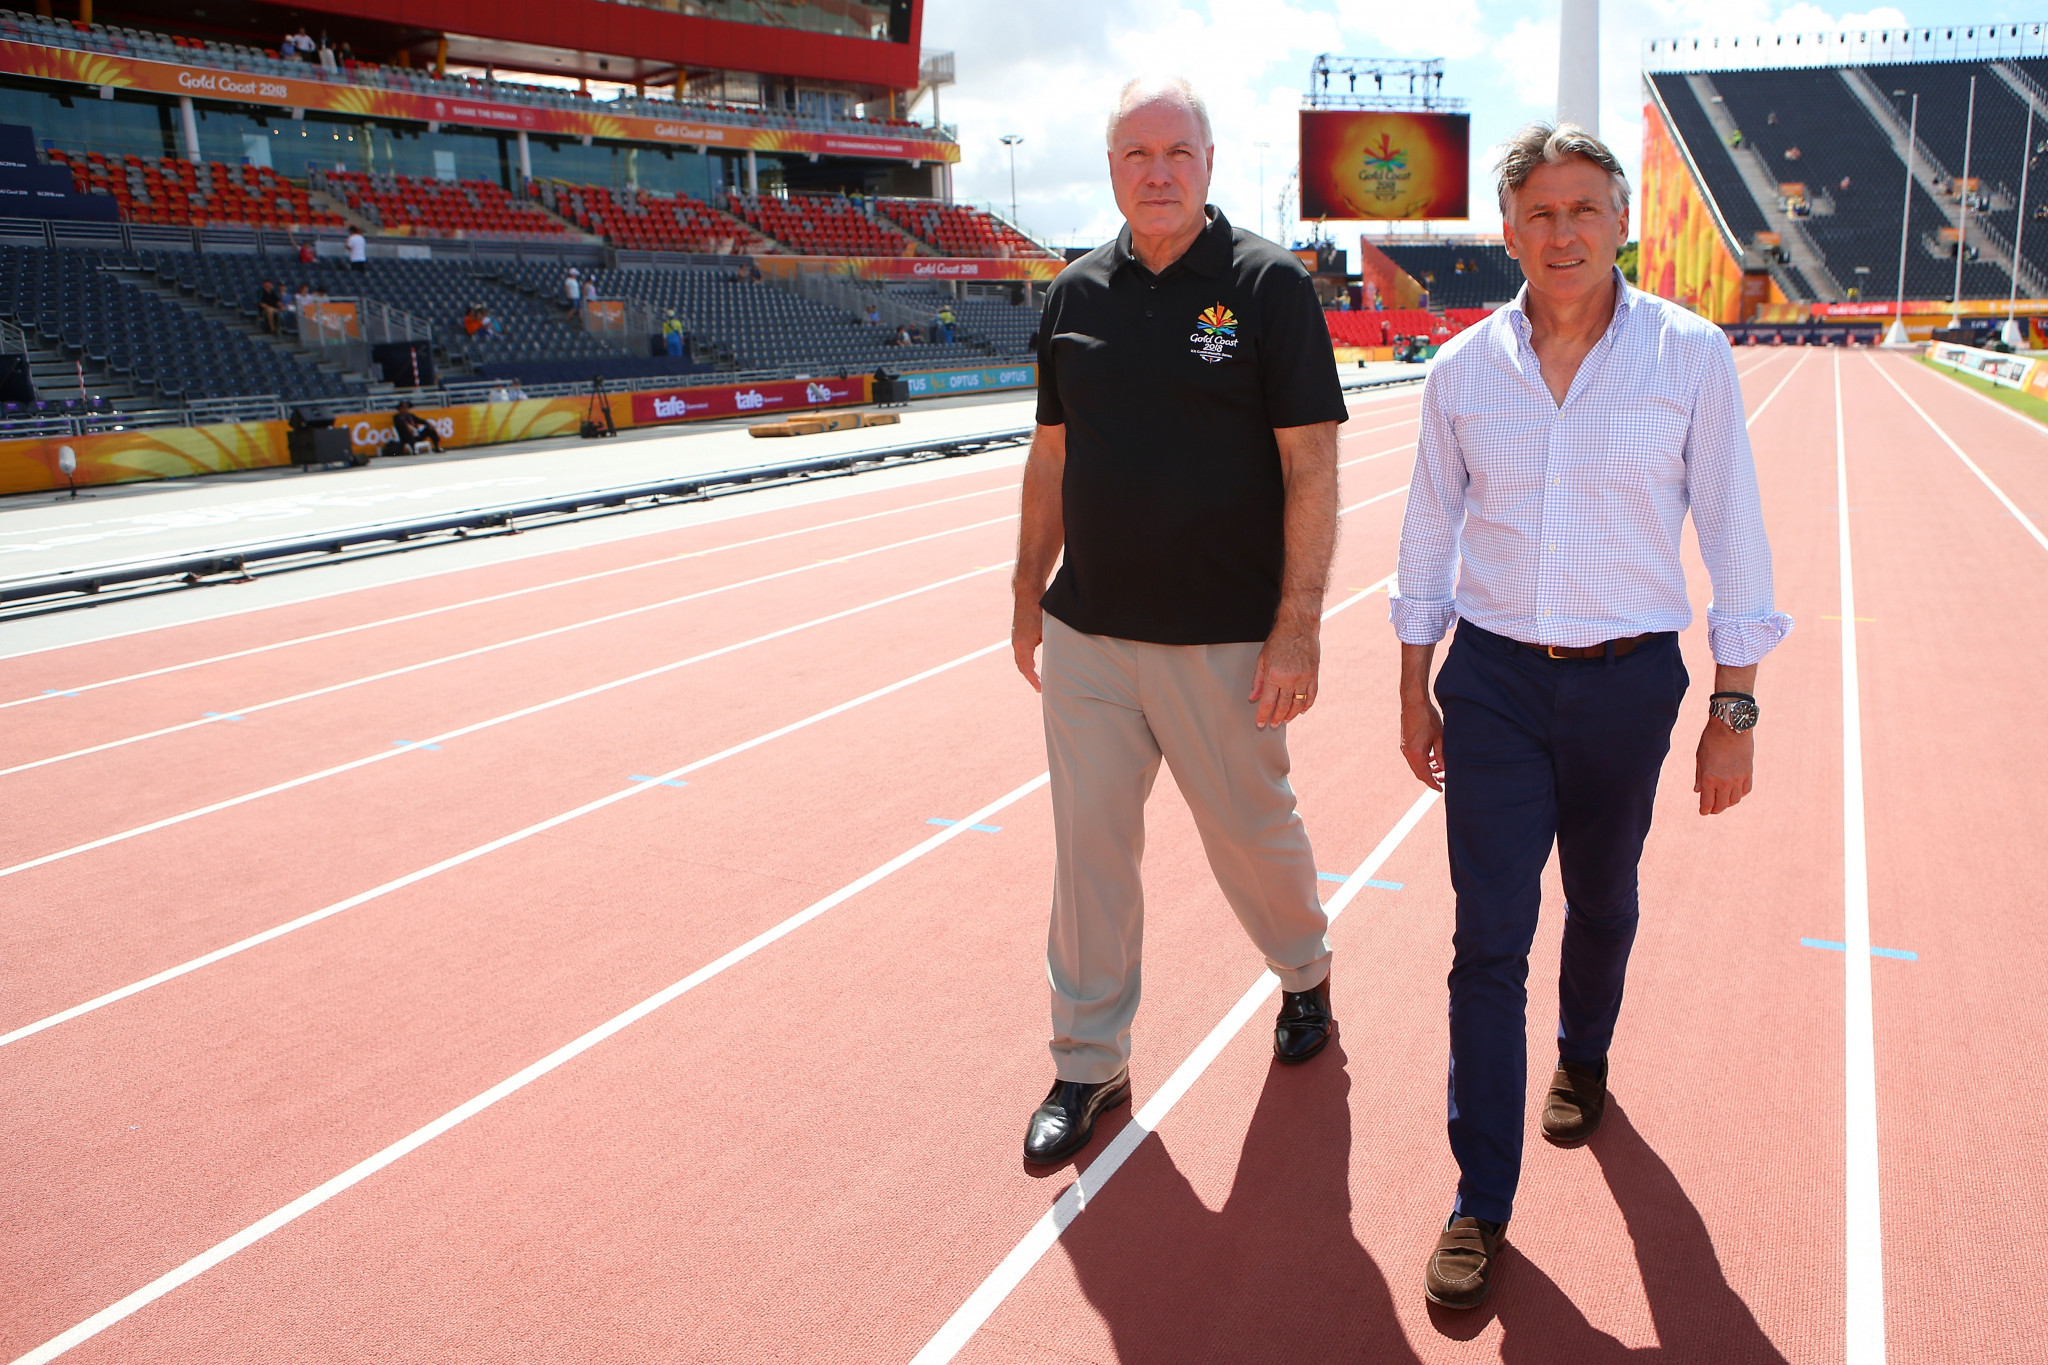 IAAF President Sebastian Coe, right, alongside Gold Coast 2018 chief executive Mark Peters, raised the idea of the mile being added to the programme for the 2022 Commonwealth Games in Birmingham during a visit here ©Getty Images